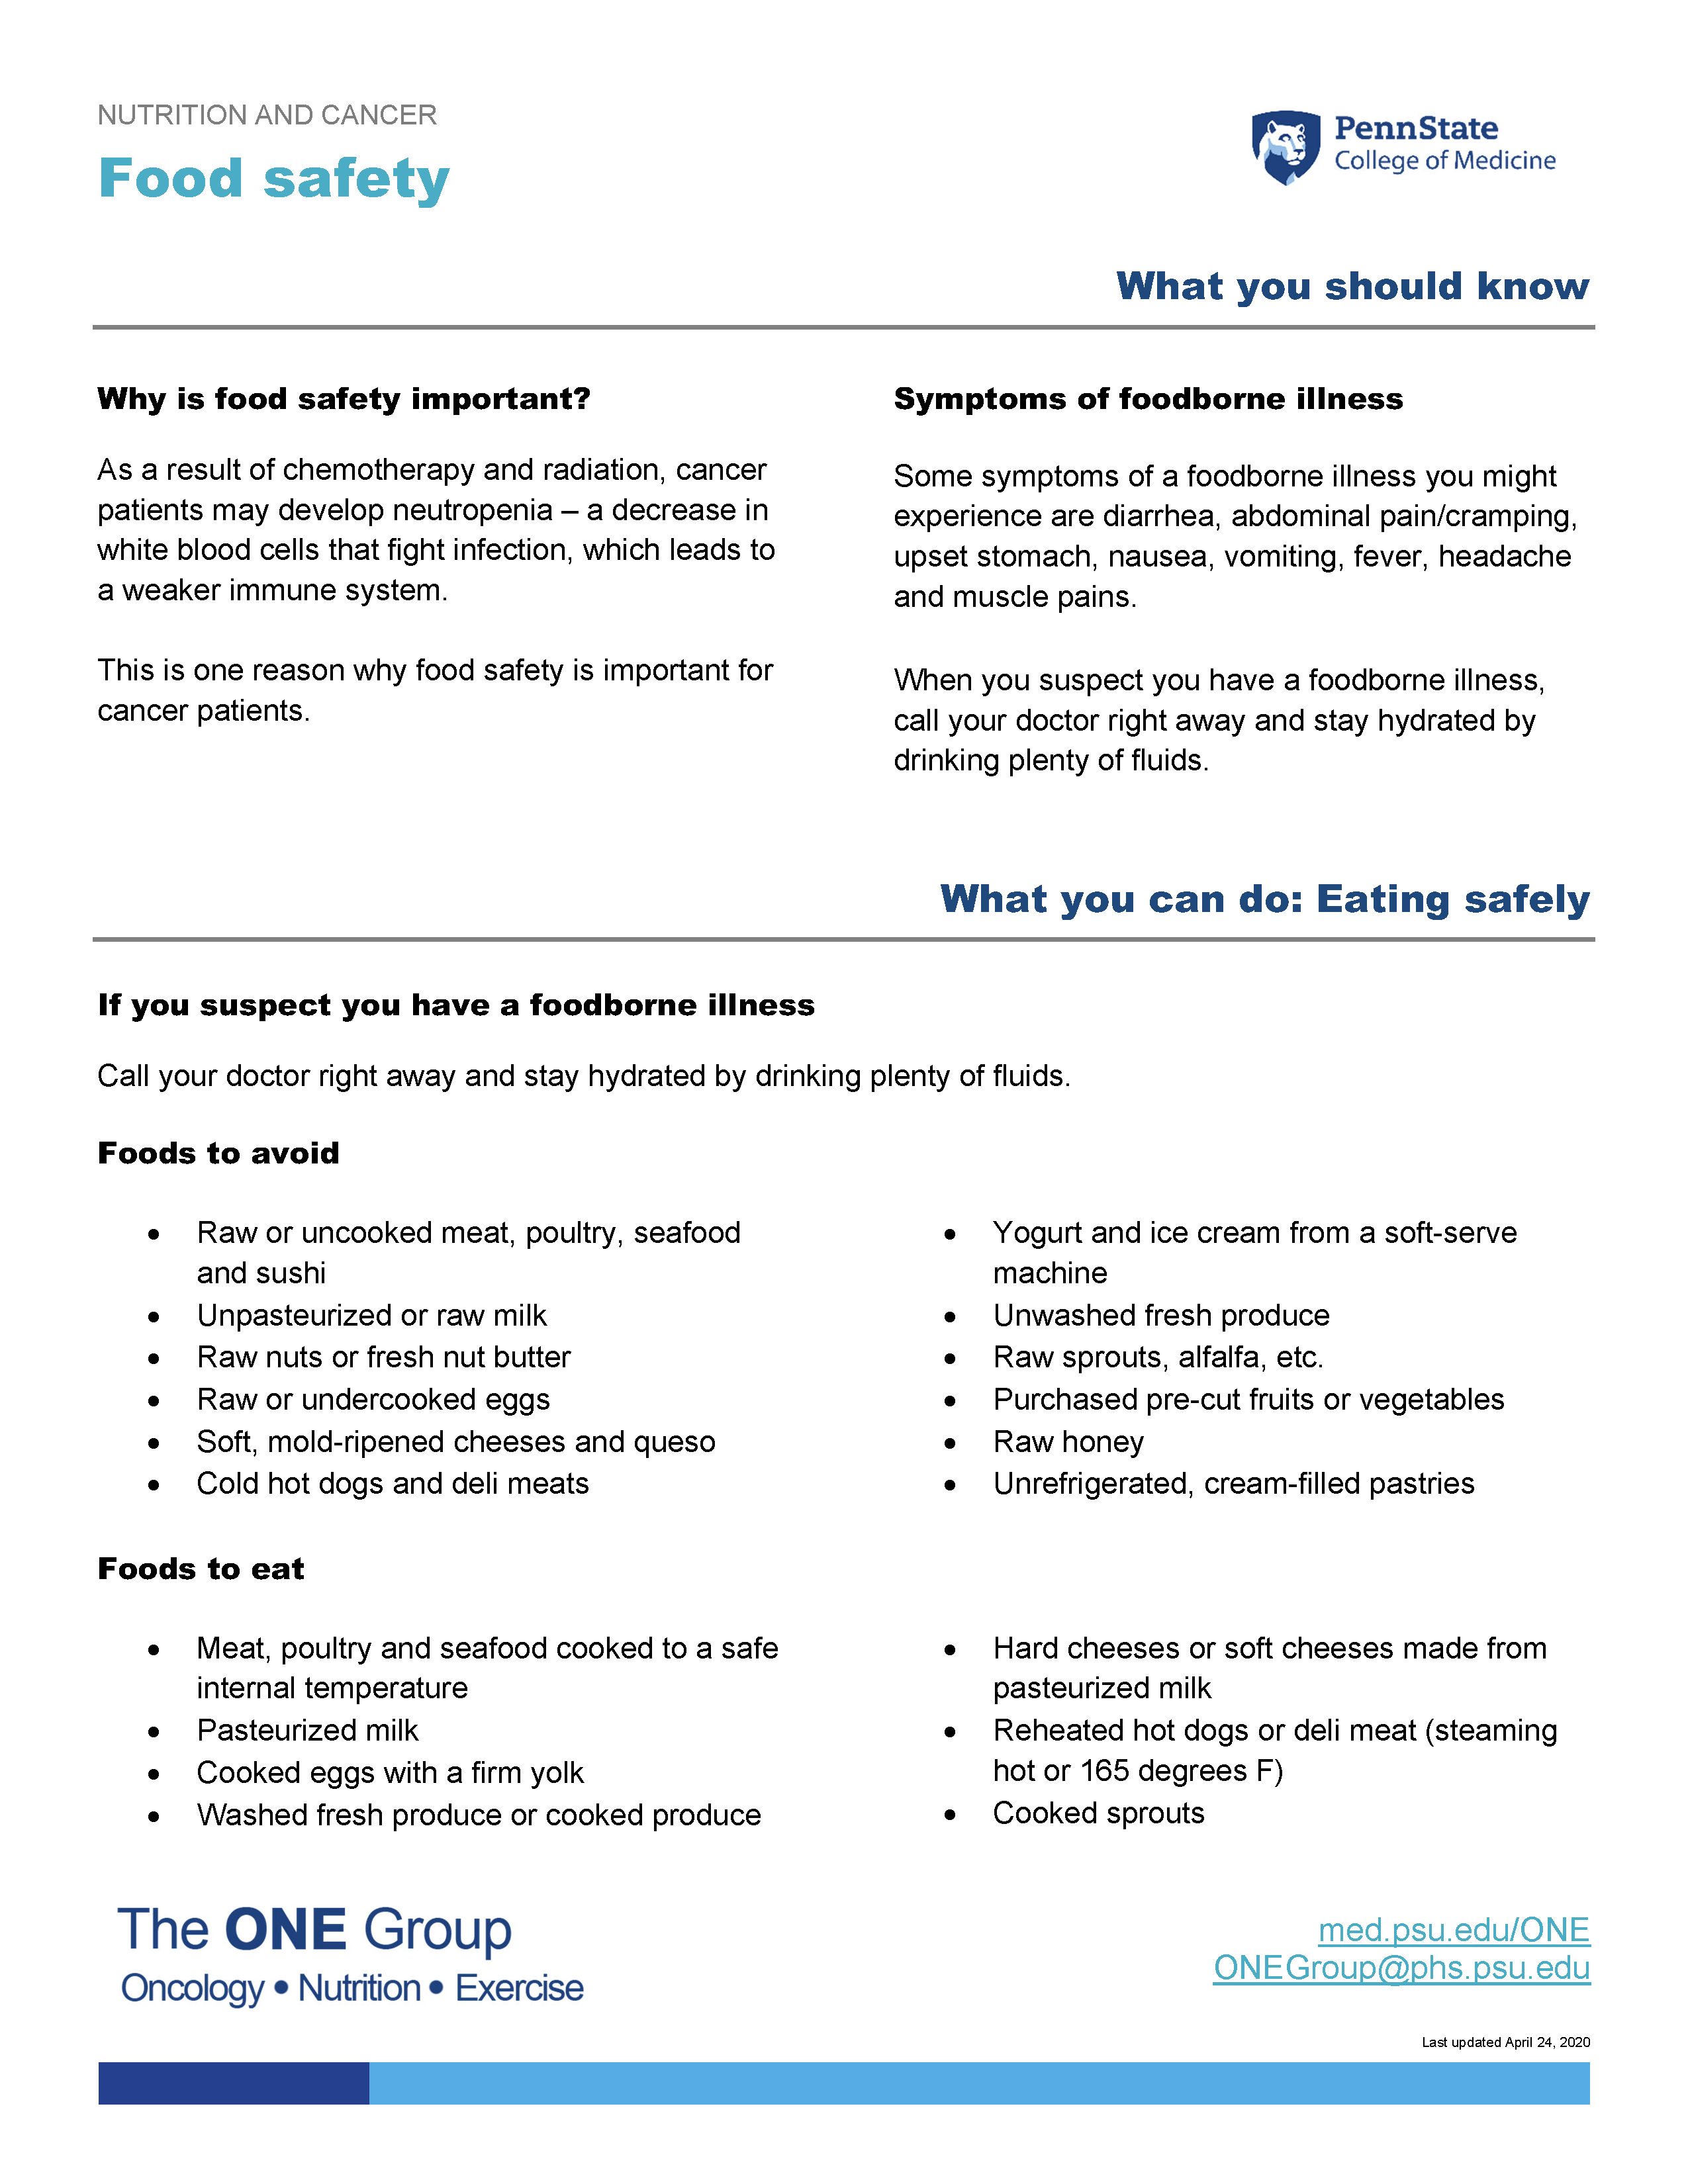 The food safety guide from The ONE Group includes the information on this page, formatted for print.